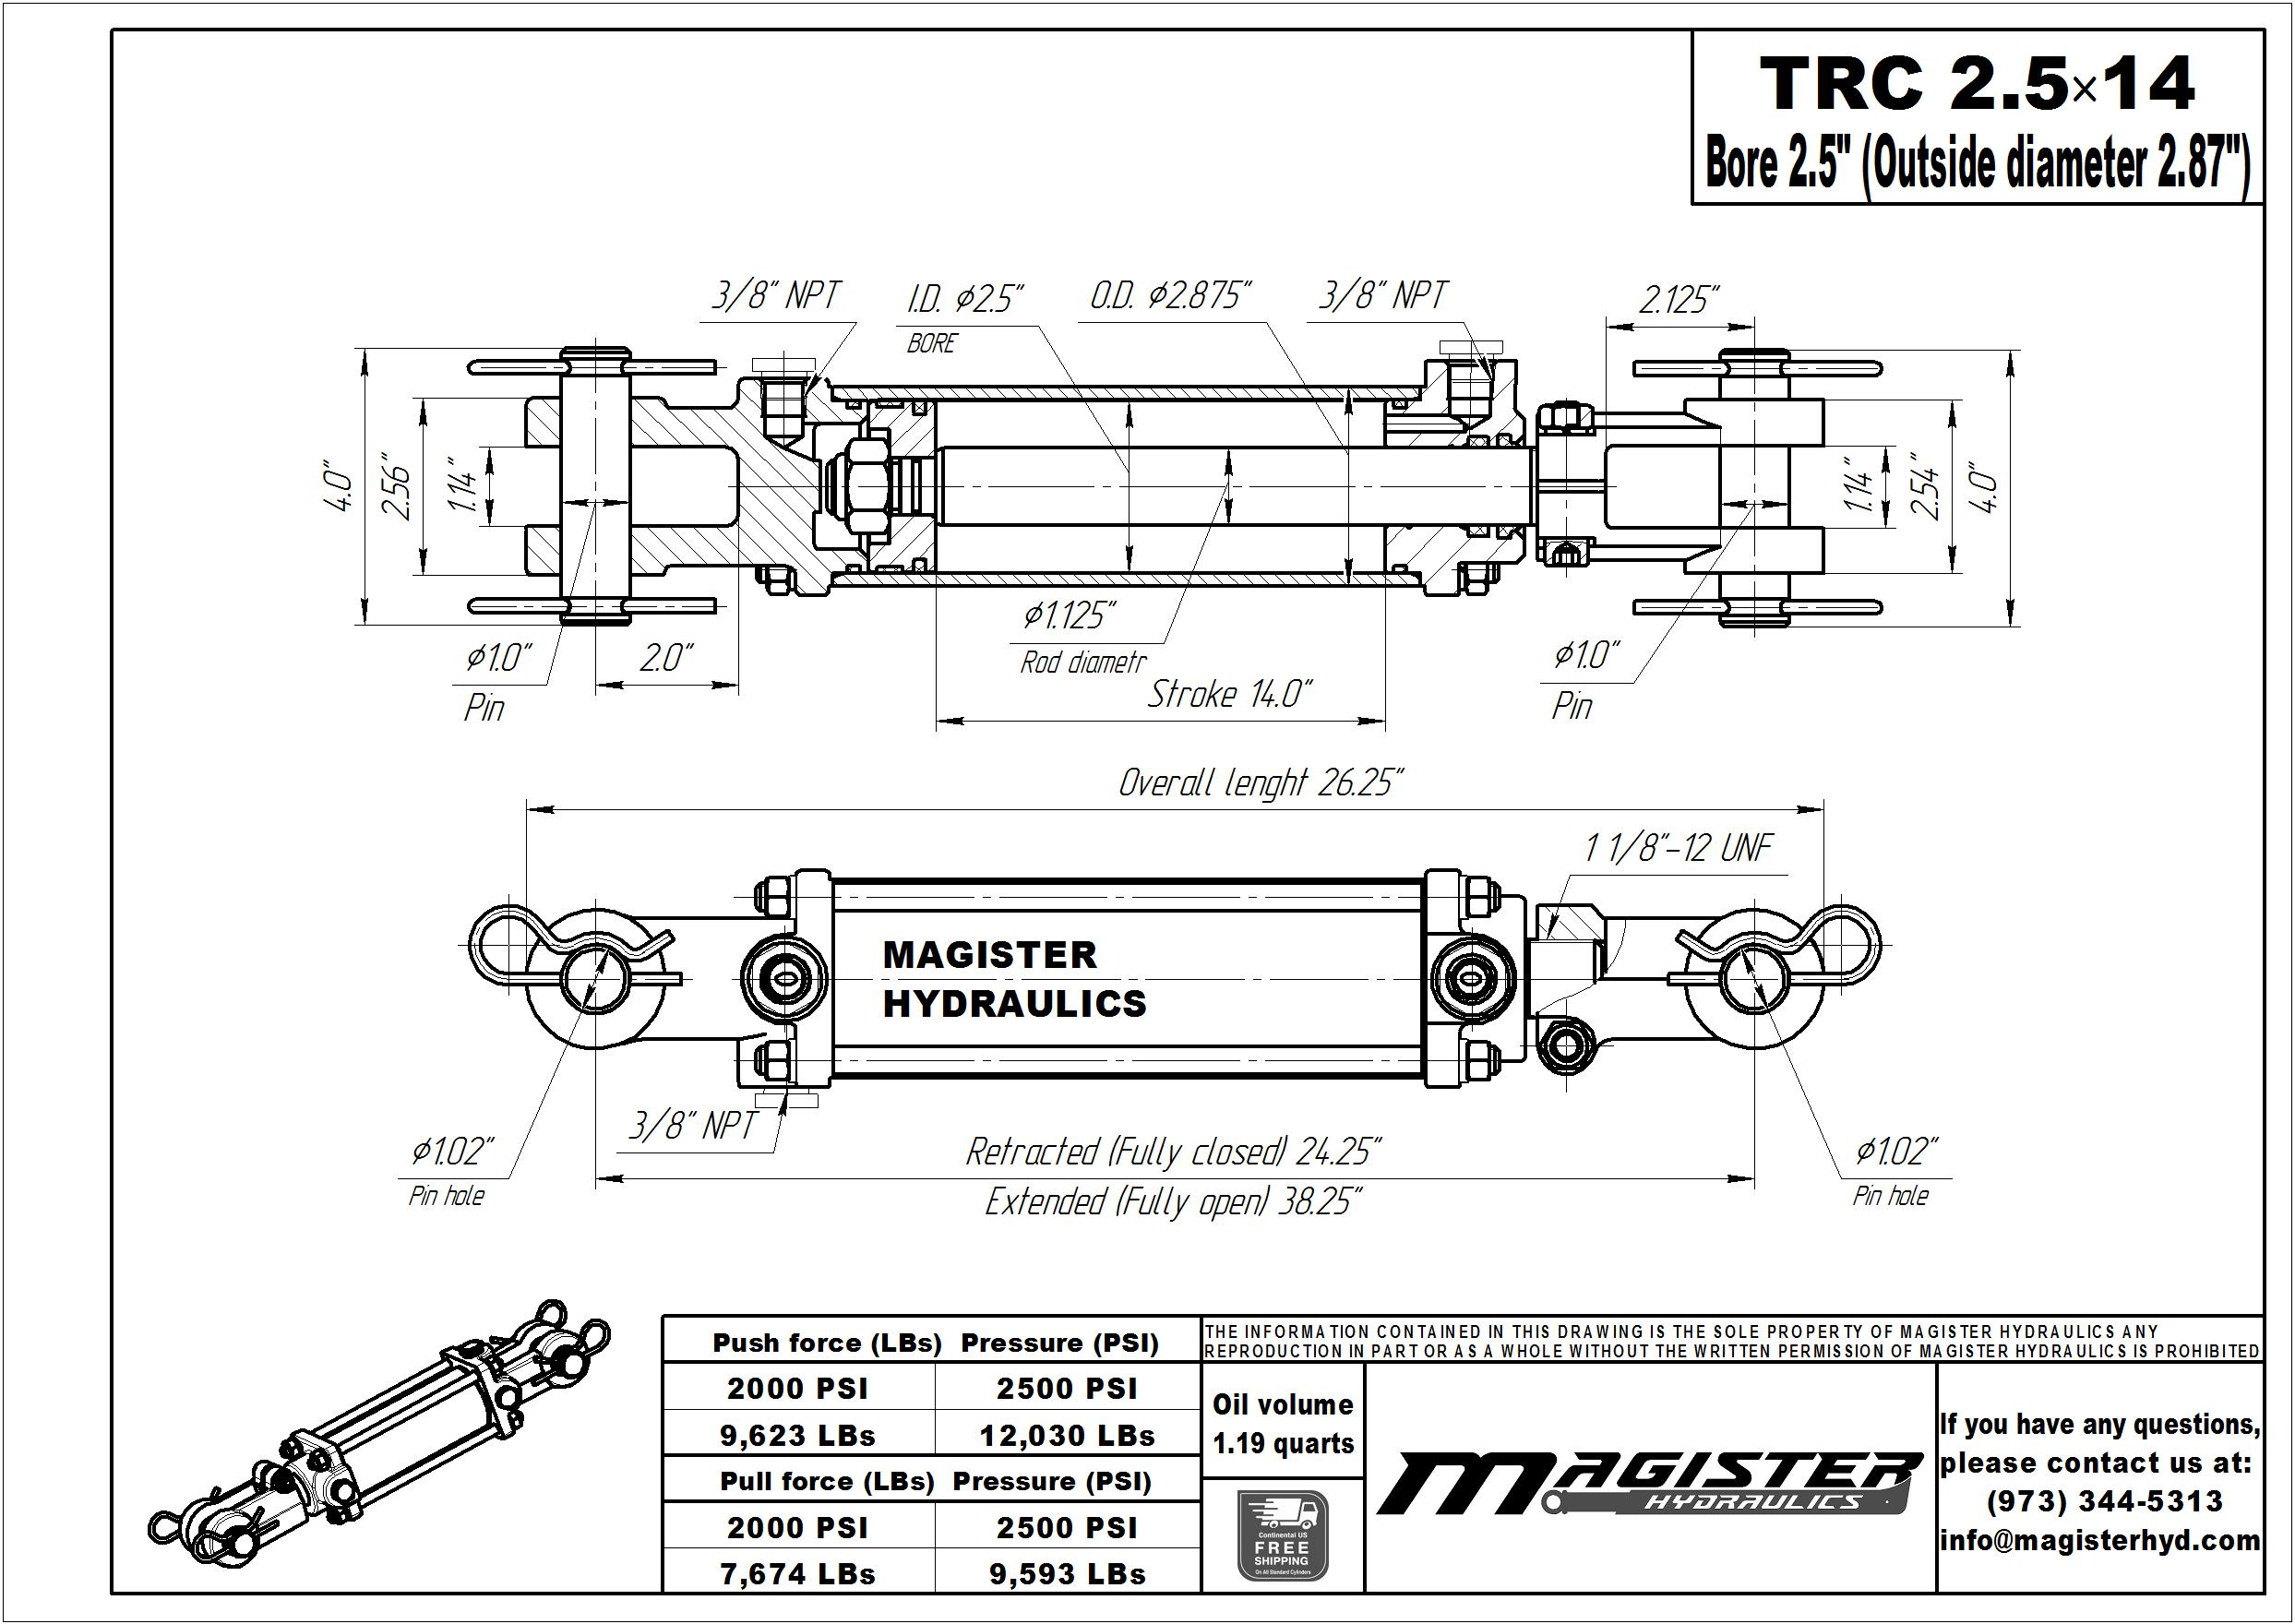 2.5 bore x 14 stroke hydraulic cylinder, tie rod double acting cylinder   Magister Hydraulics